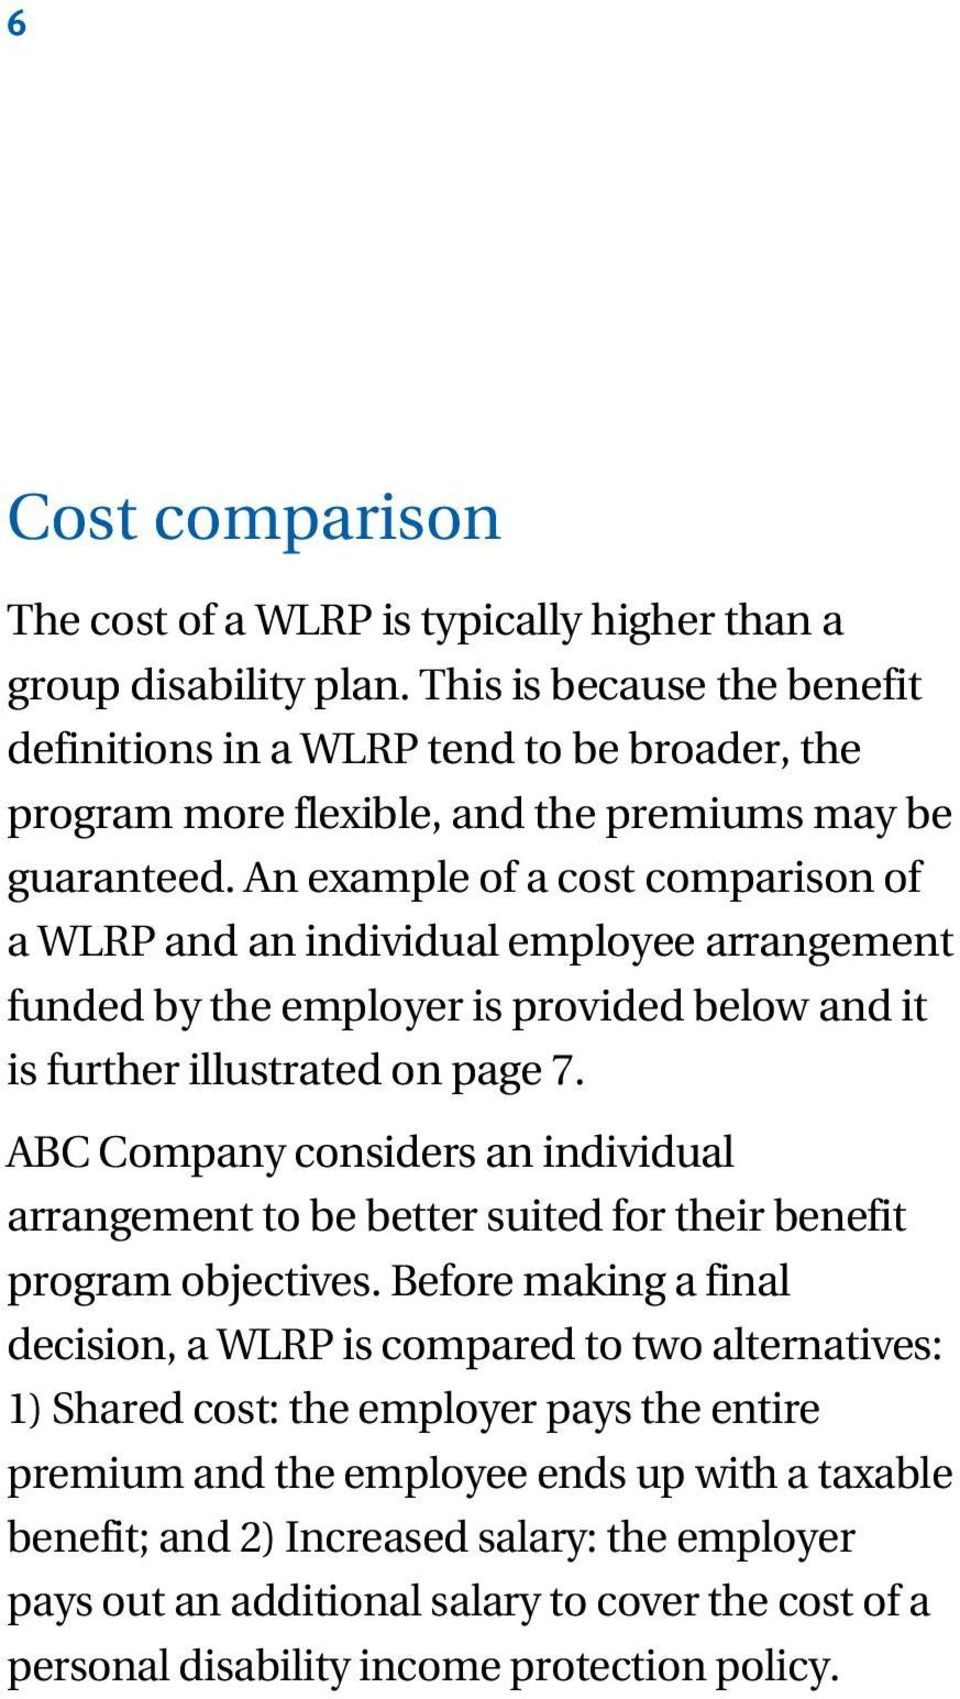 An example of a cost comparison of a WLRP and an individual employee arrangement funded by the employer is provided below and it is further illustrated on page 7.